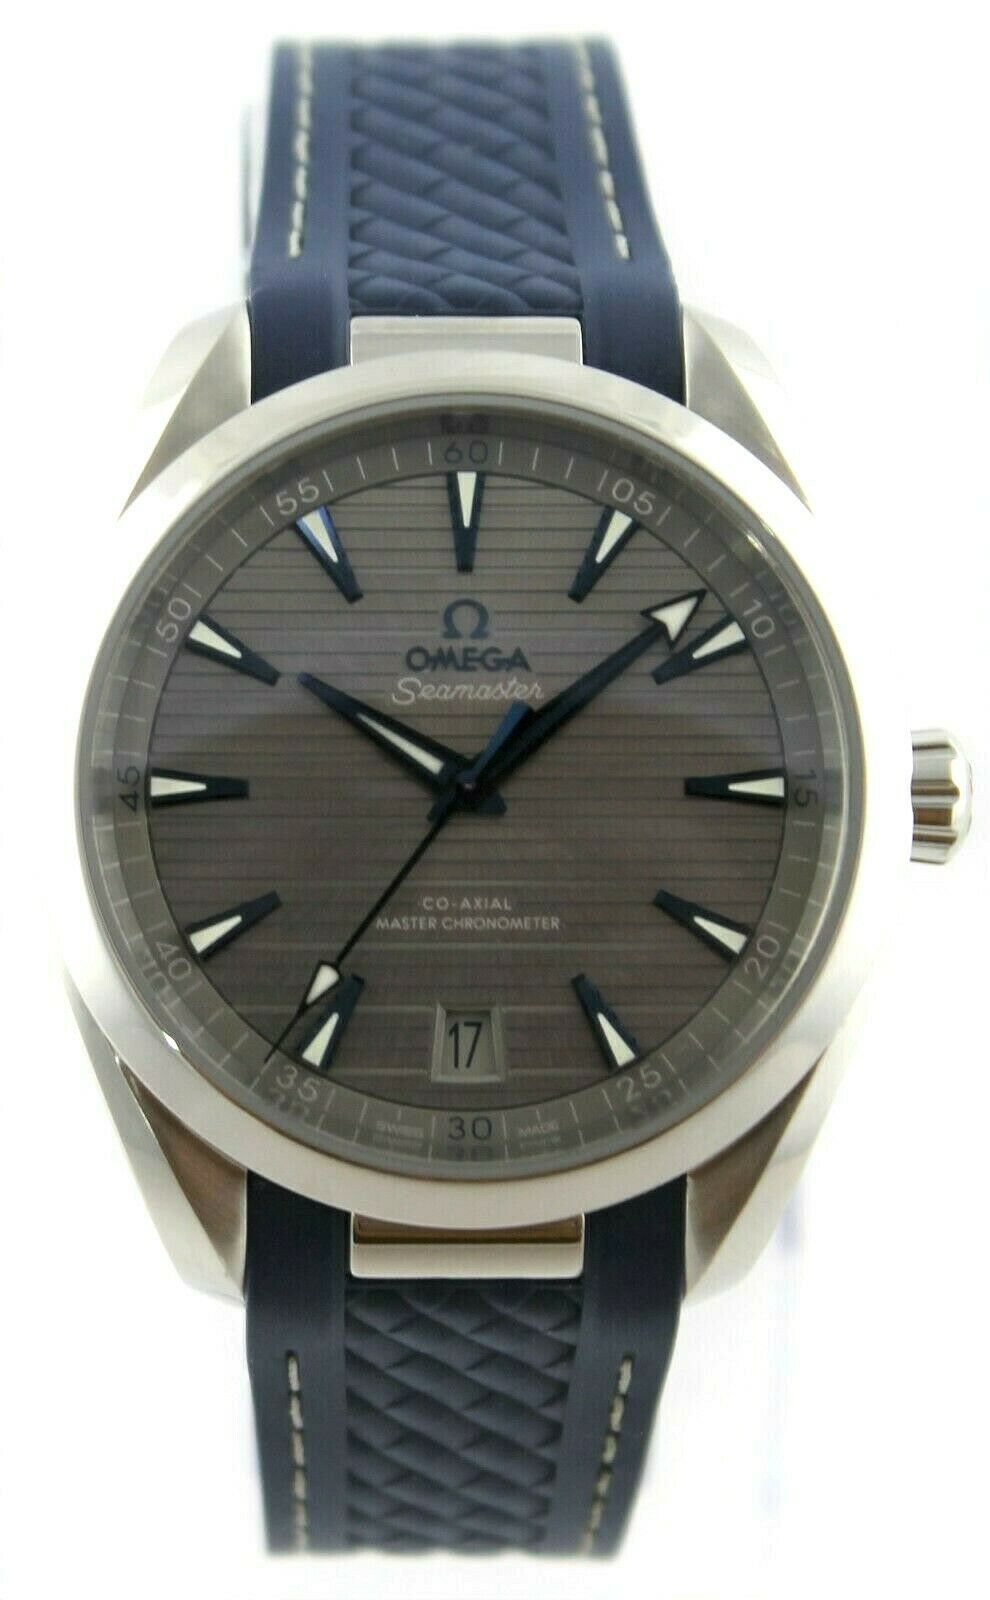 OMEGA SEAMASTER AQUA TERRA 220.12.41.21.06.001 MASTER CHRONOMETER RUBBER WATCH